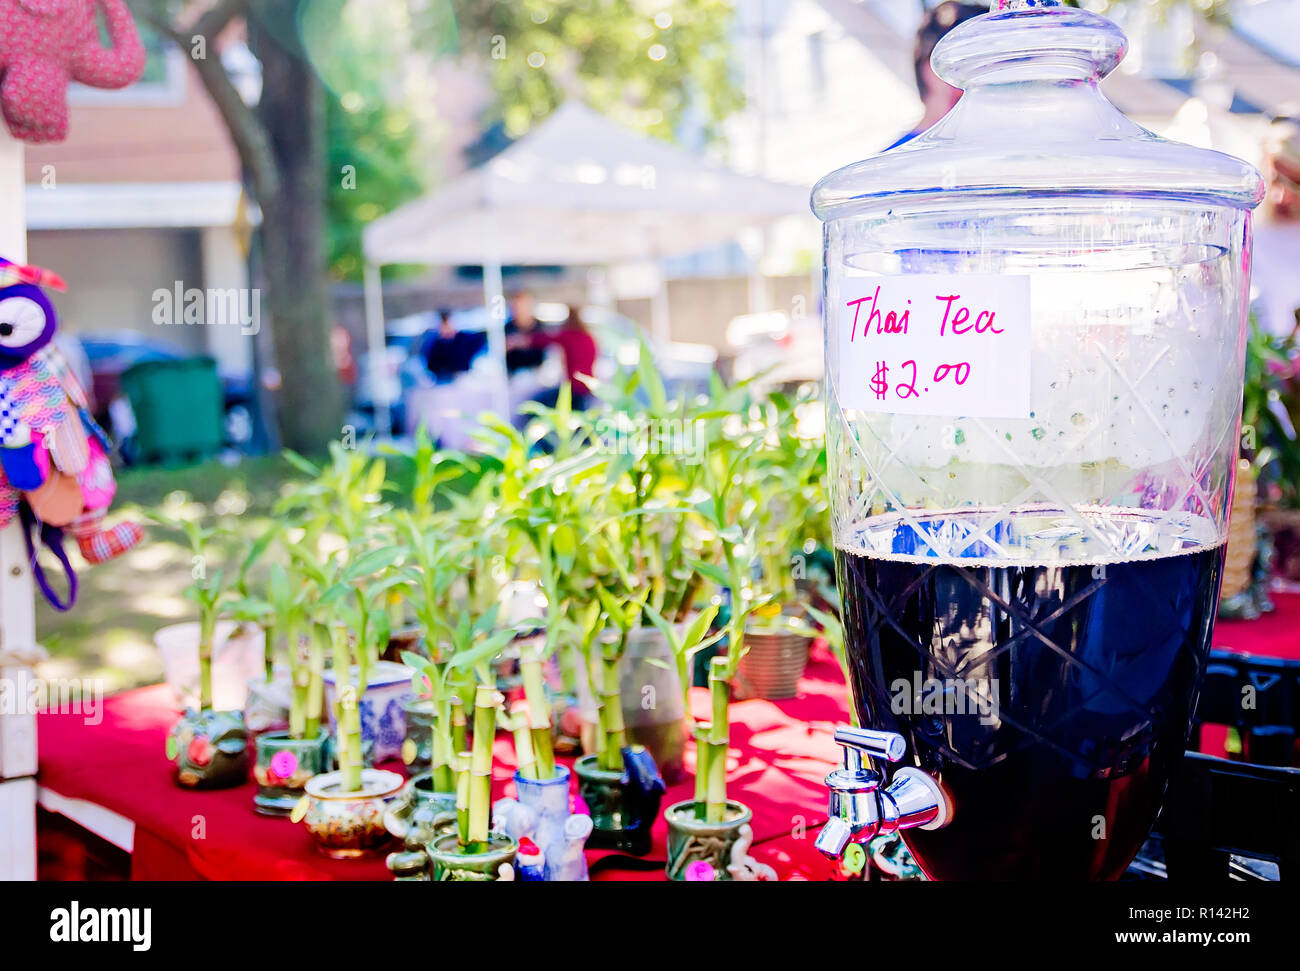 Thai tea is and bamboo is for sale at the Bamboo Garden vendor booth at Market in the Park in Cathedral Square, Nov. 3, 2018, in Mobile, Alabama. - Stock Image